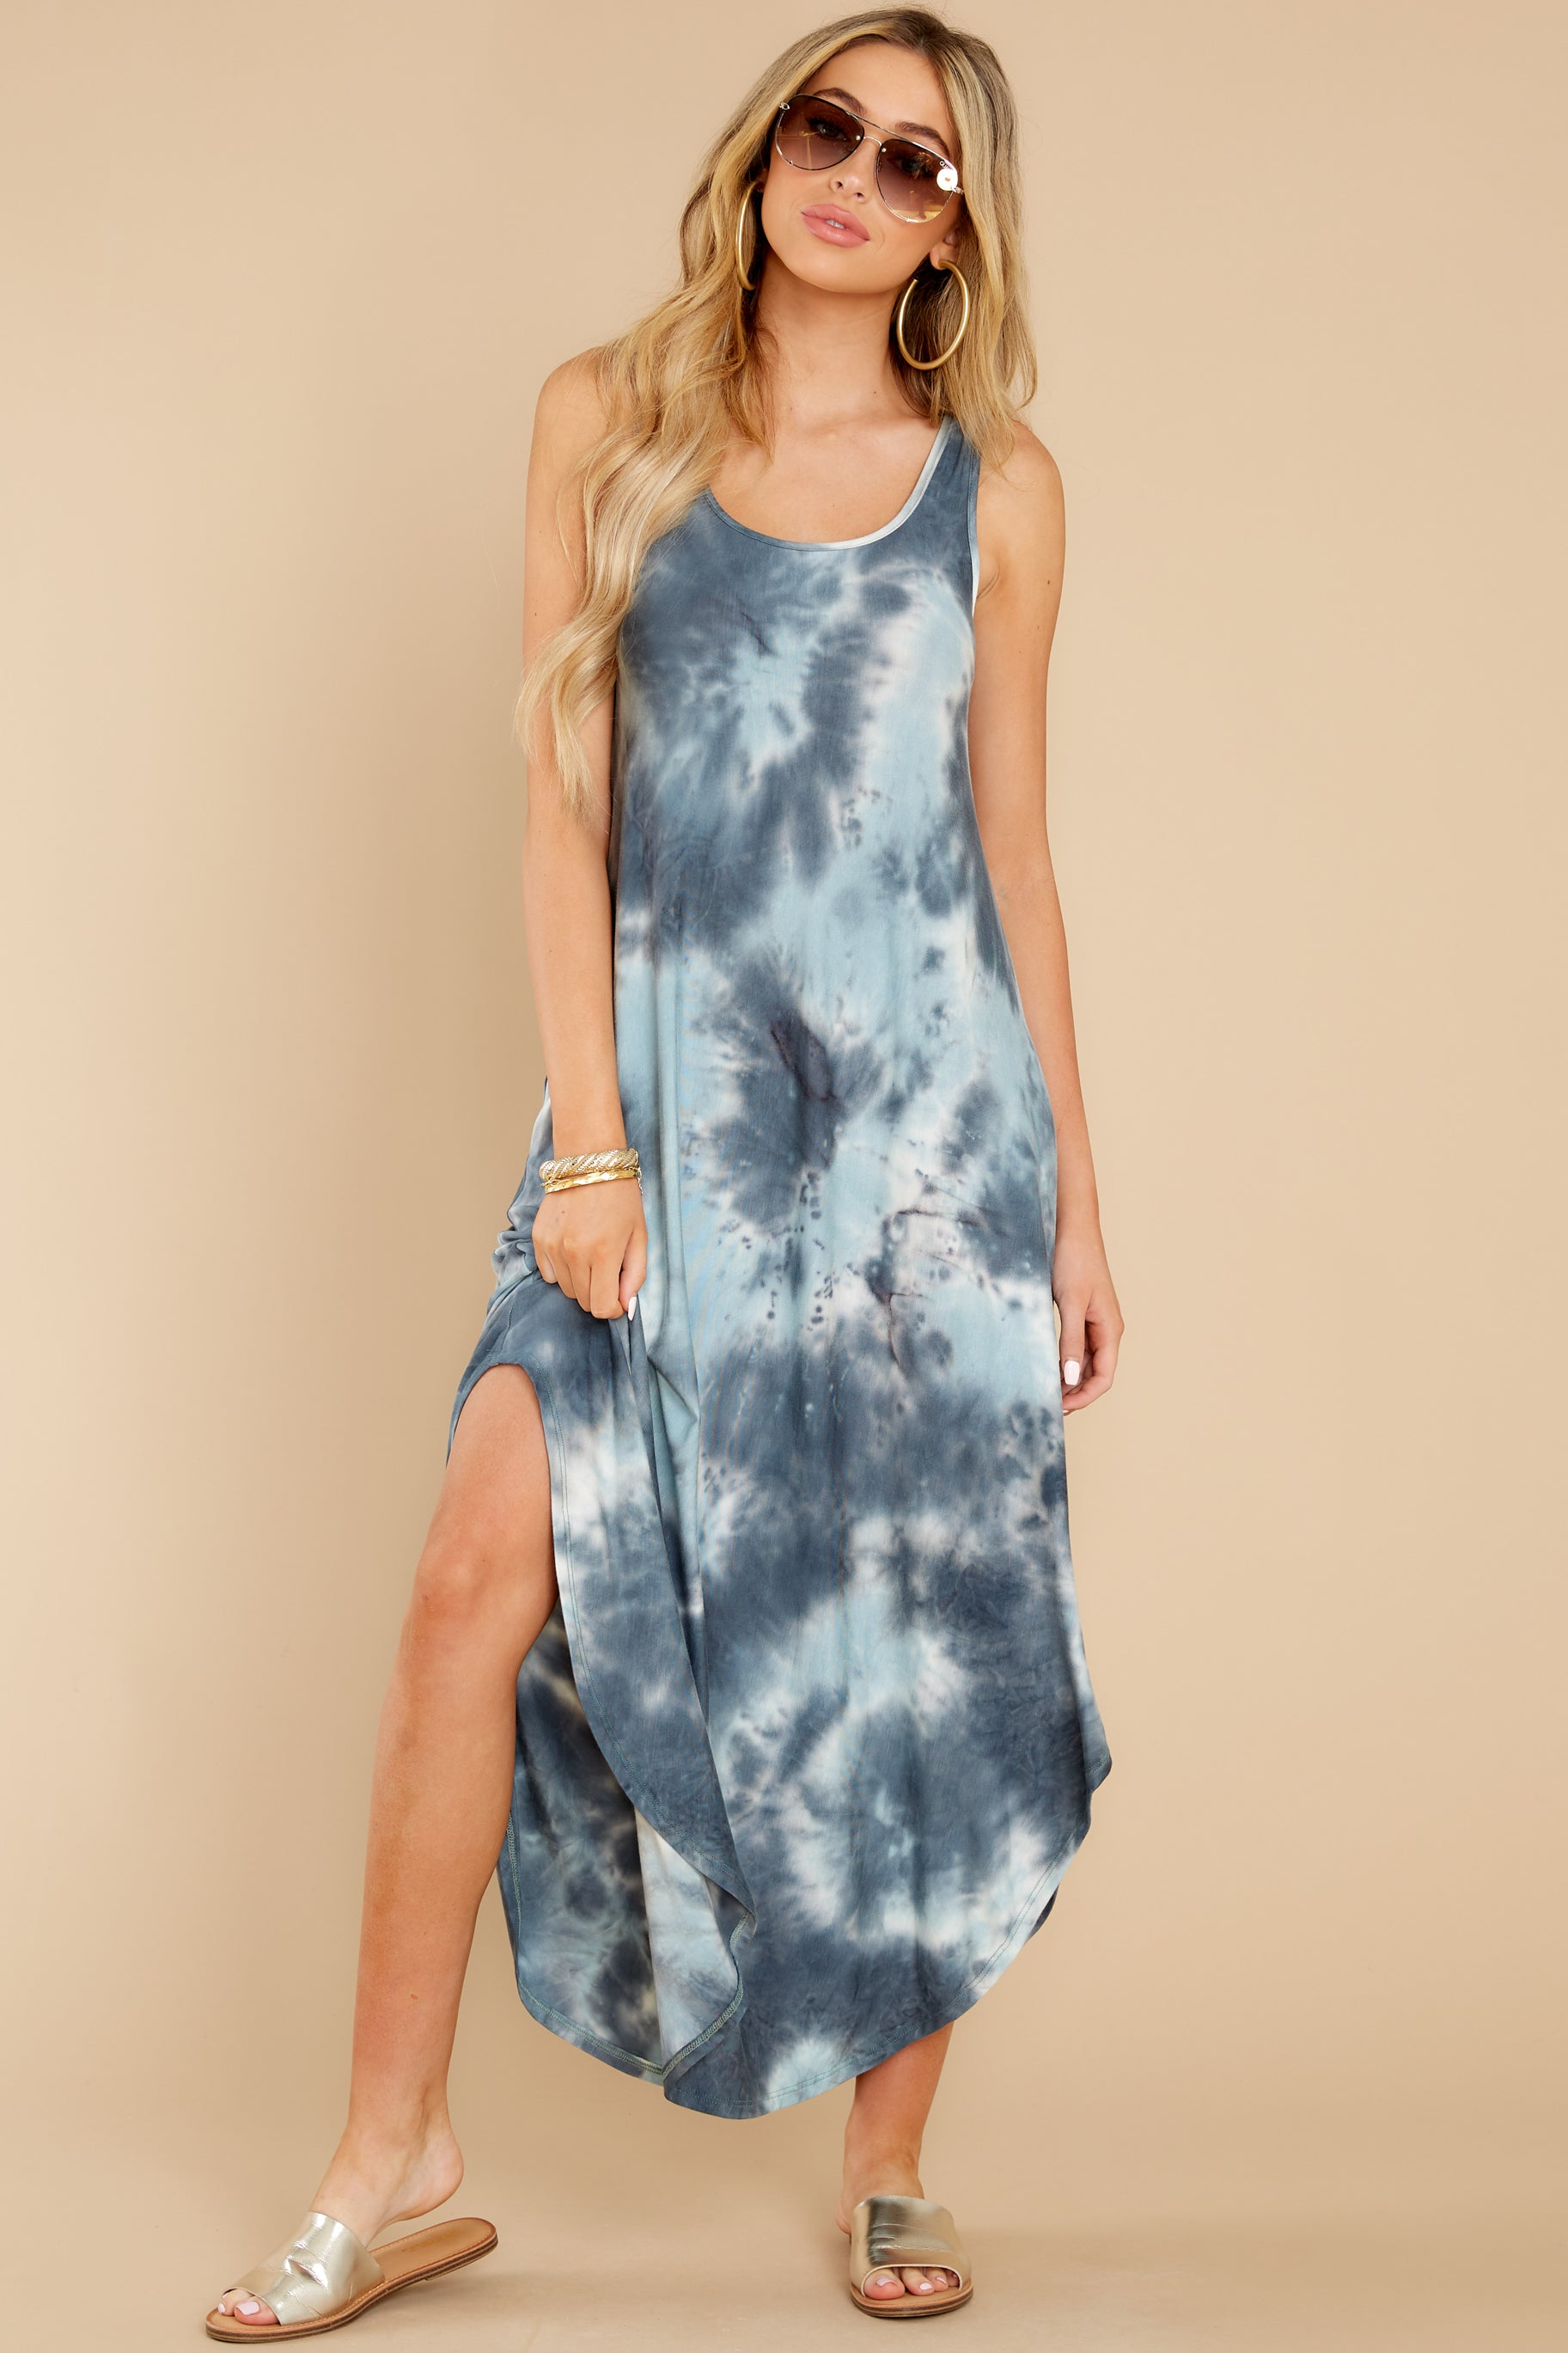 5 Easily Swayed Blue Tie Dye Maxi Dress at reddress.com